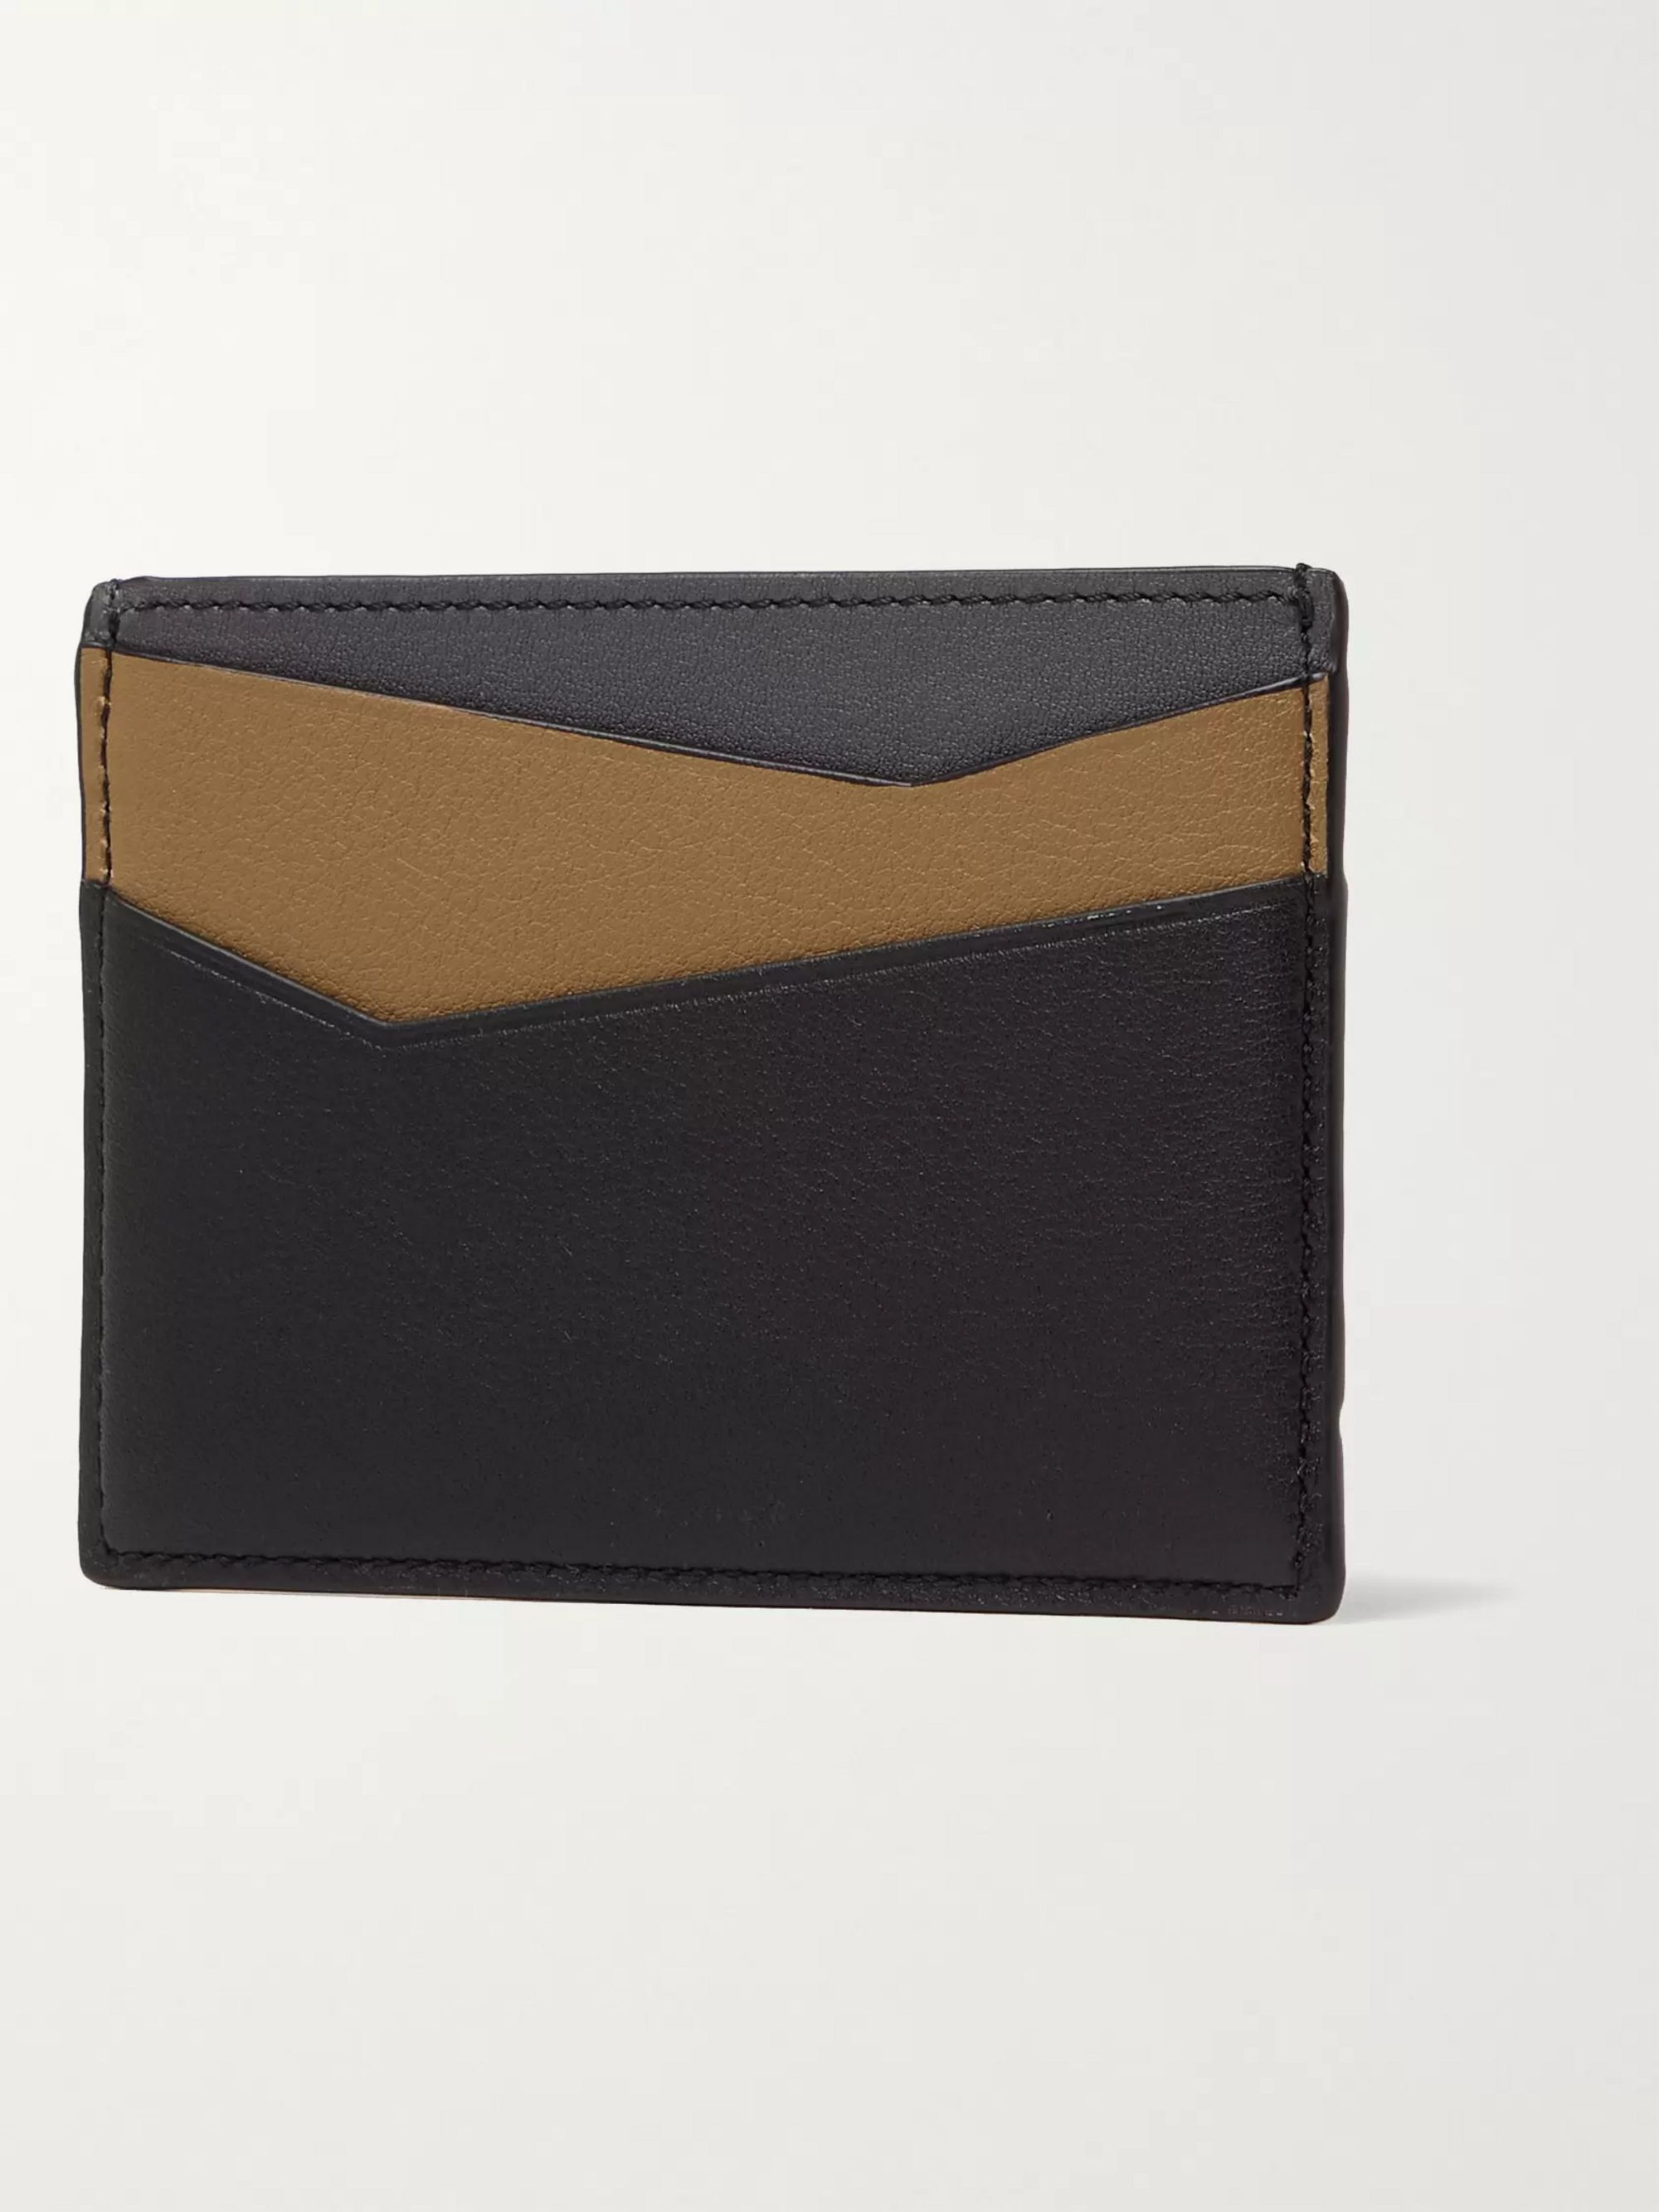 LOEWE Puzzle Logo-Debossed Full-Grain Leather Cardholder